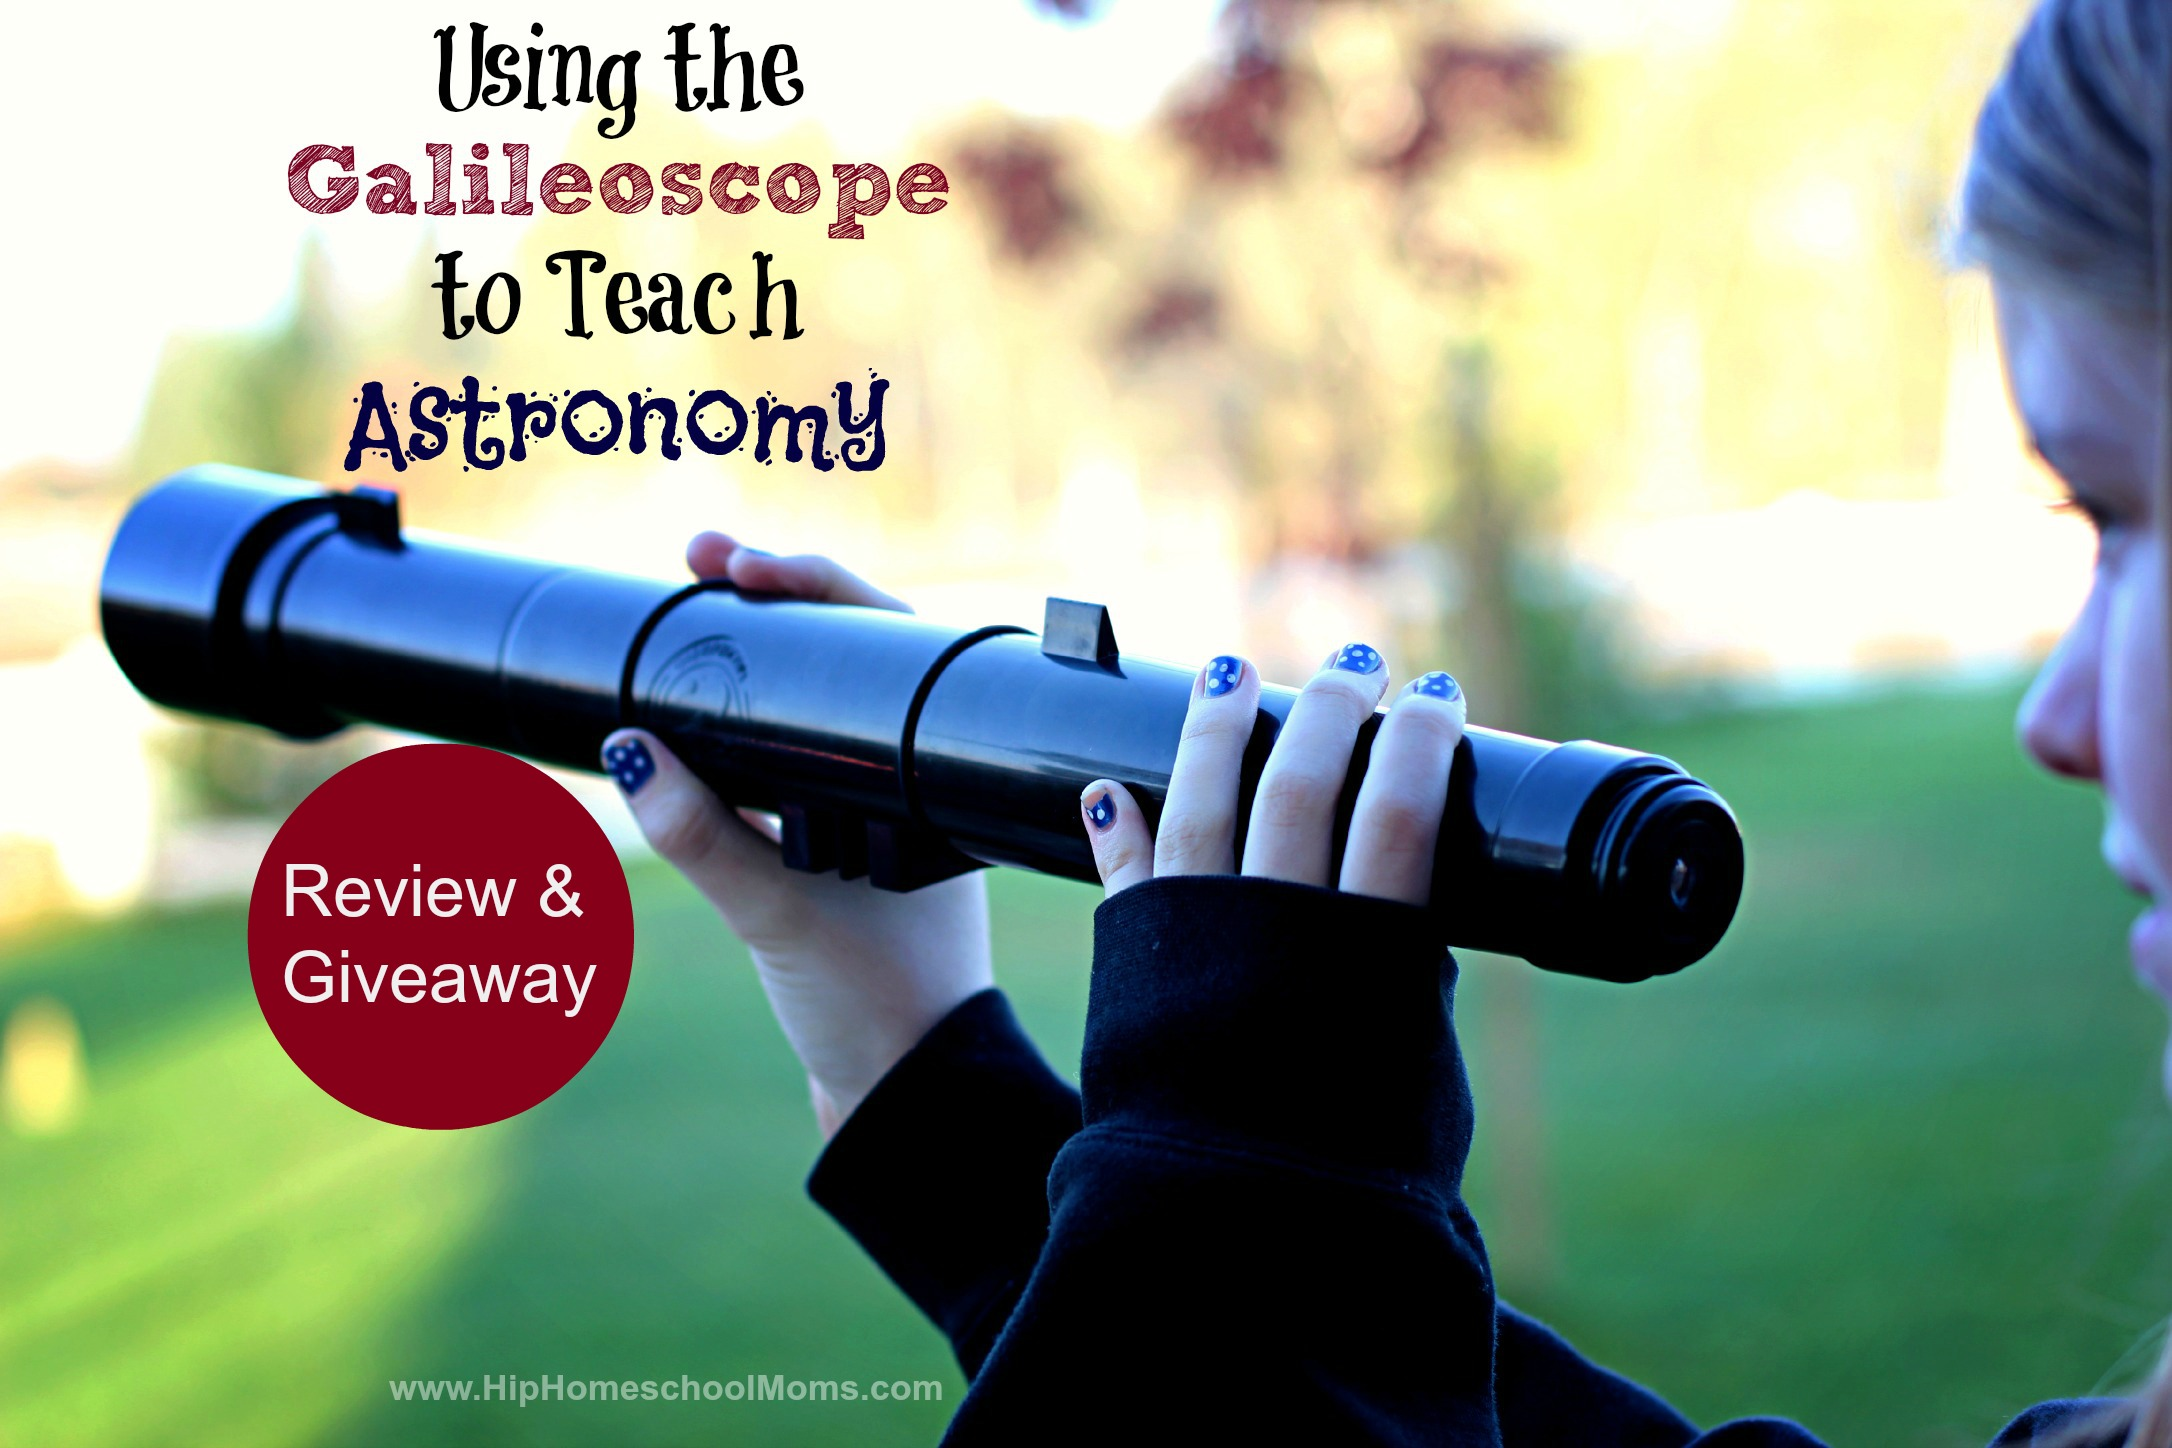 Using the Galileoscope to Teach Astronomy Review & Giveaway {closed}